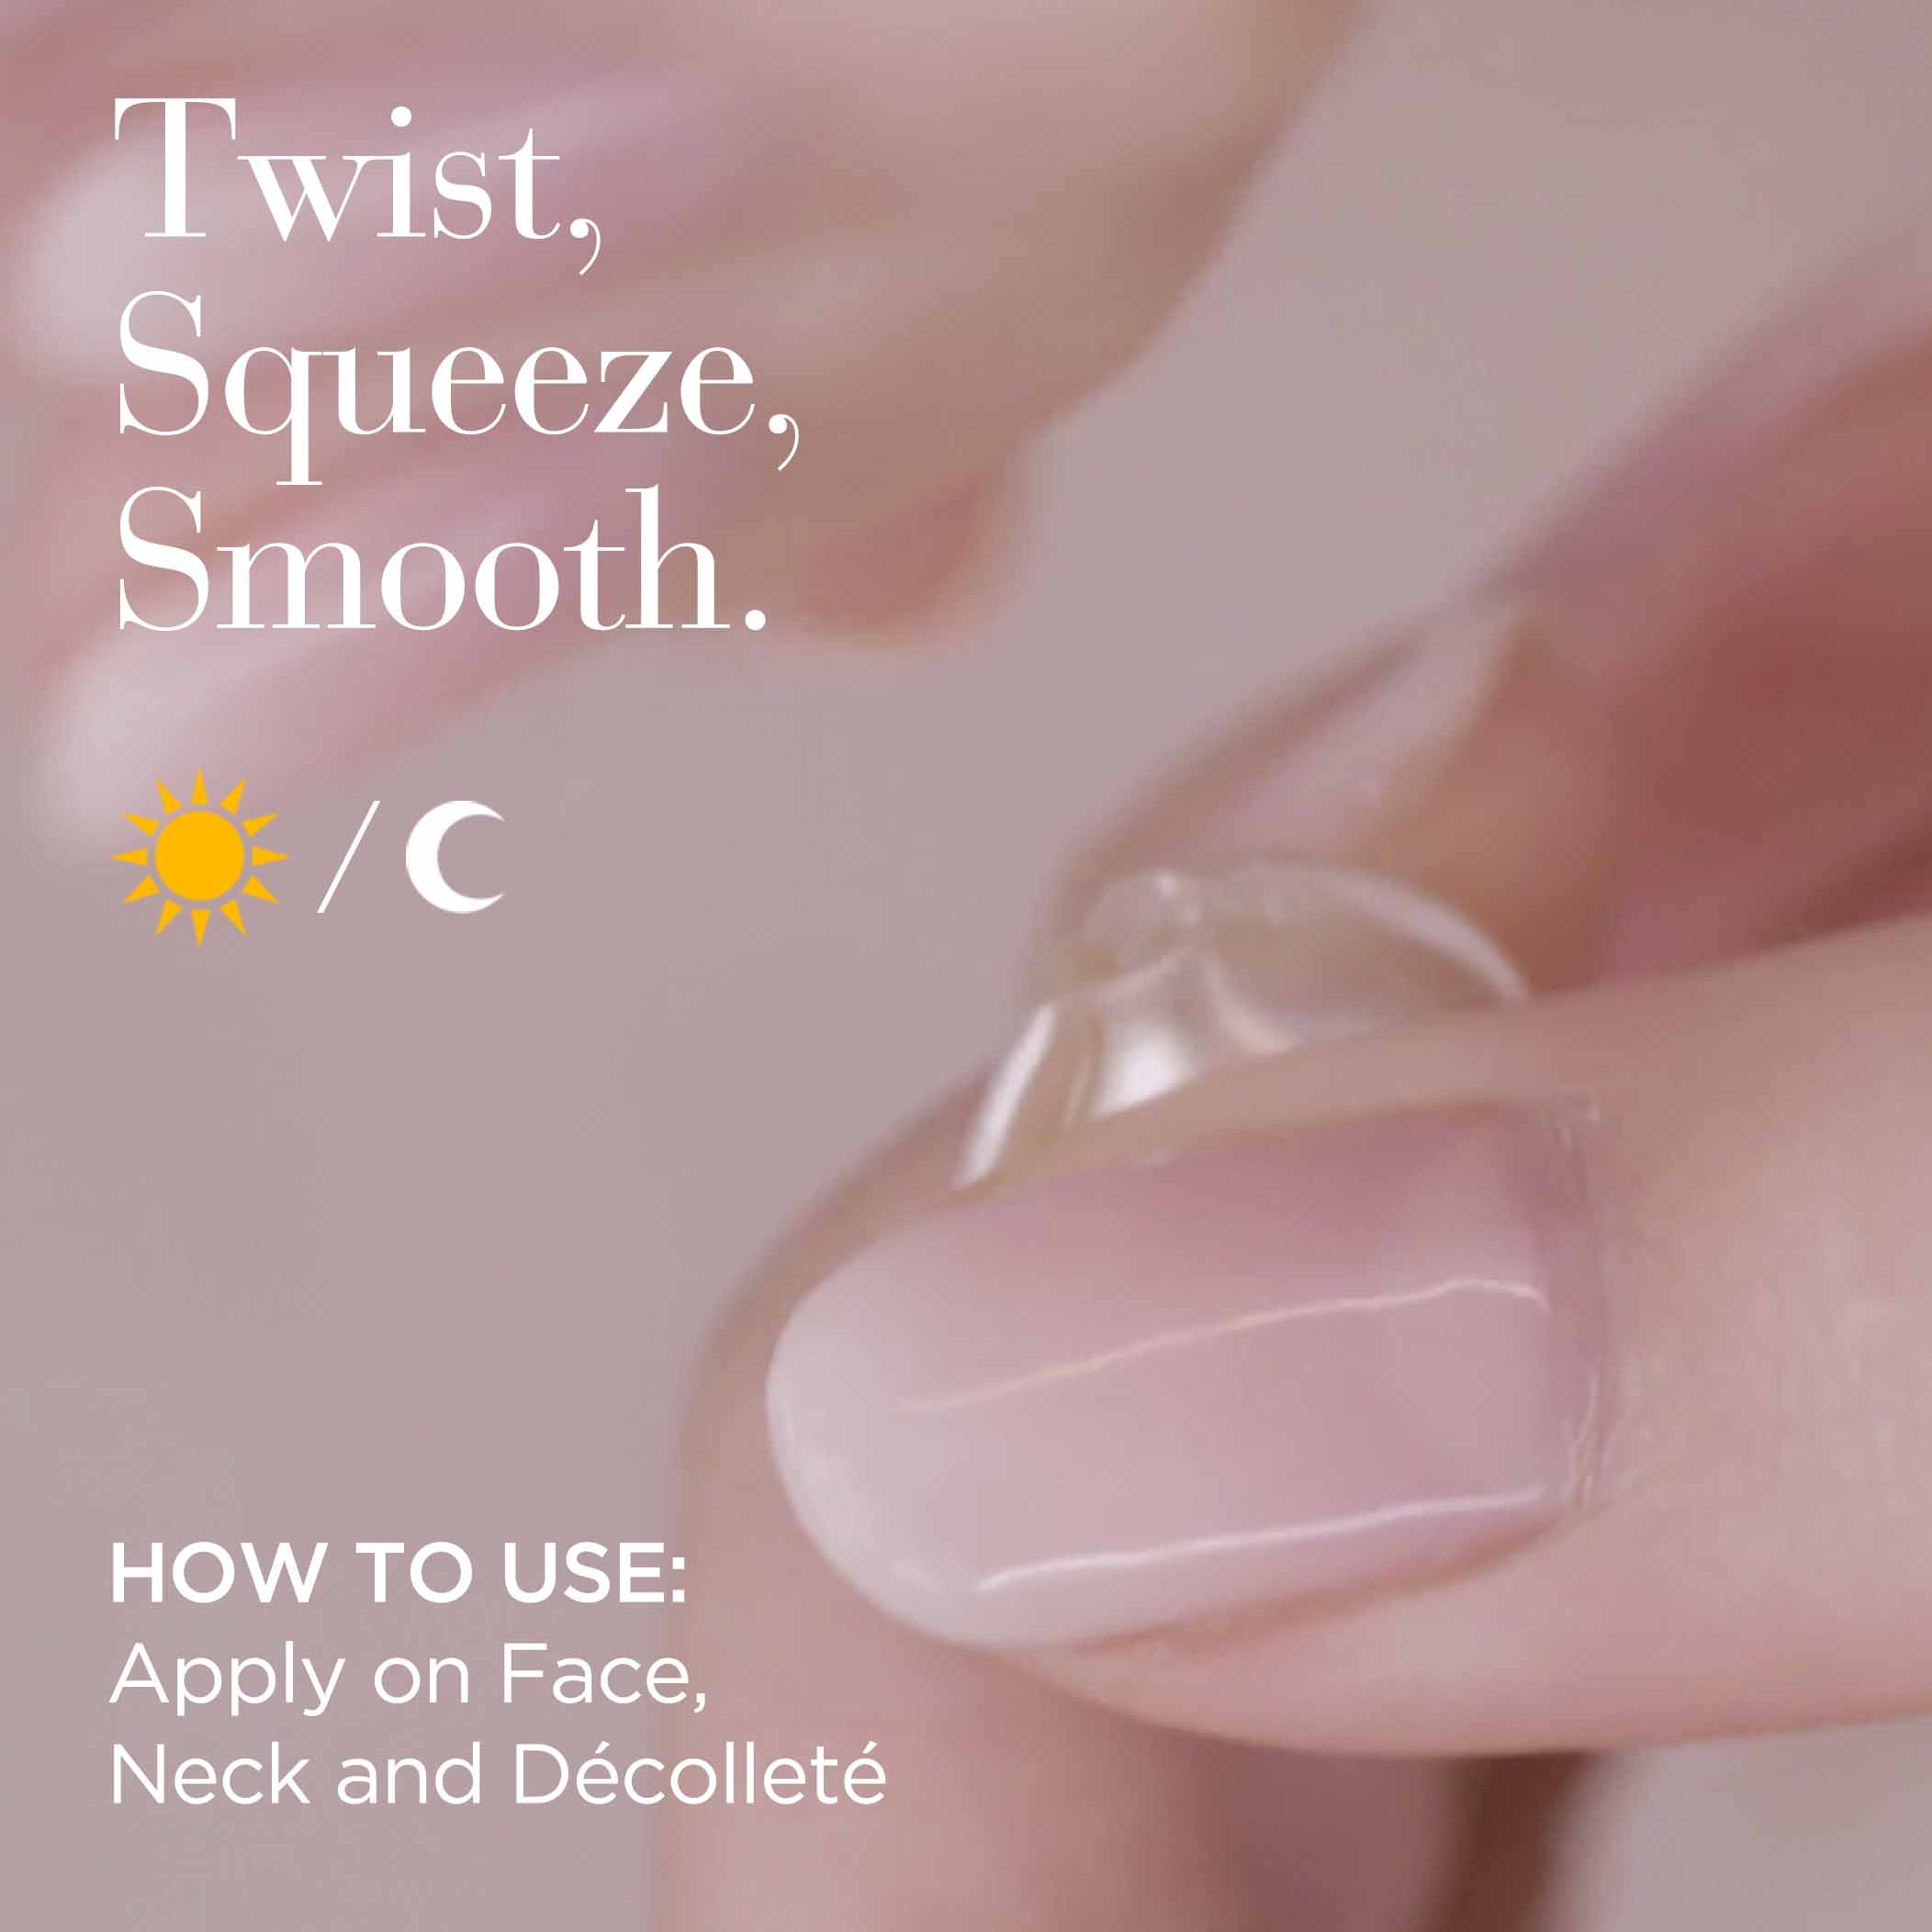 Twist, Squeeze, Smooth at day or night. Apply on face, neck and decollete.